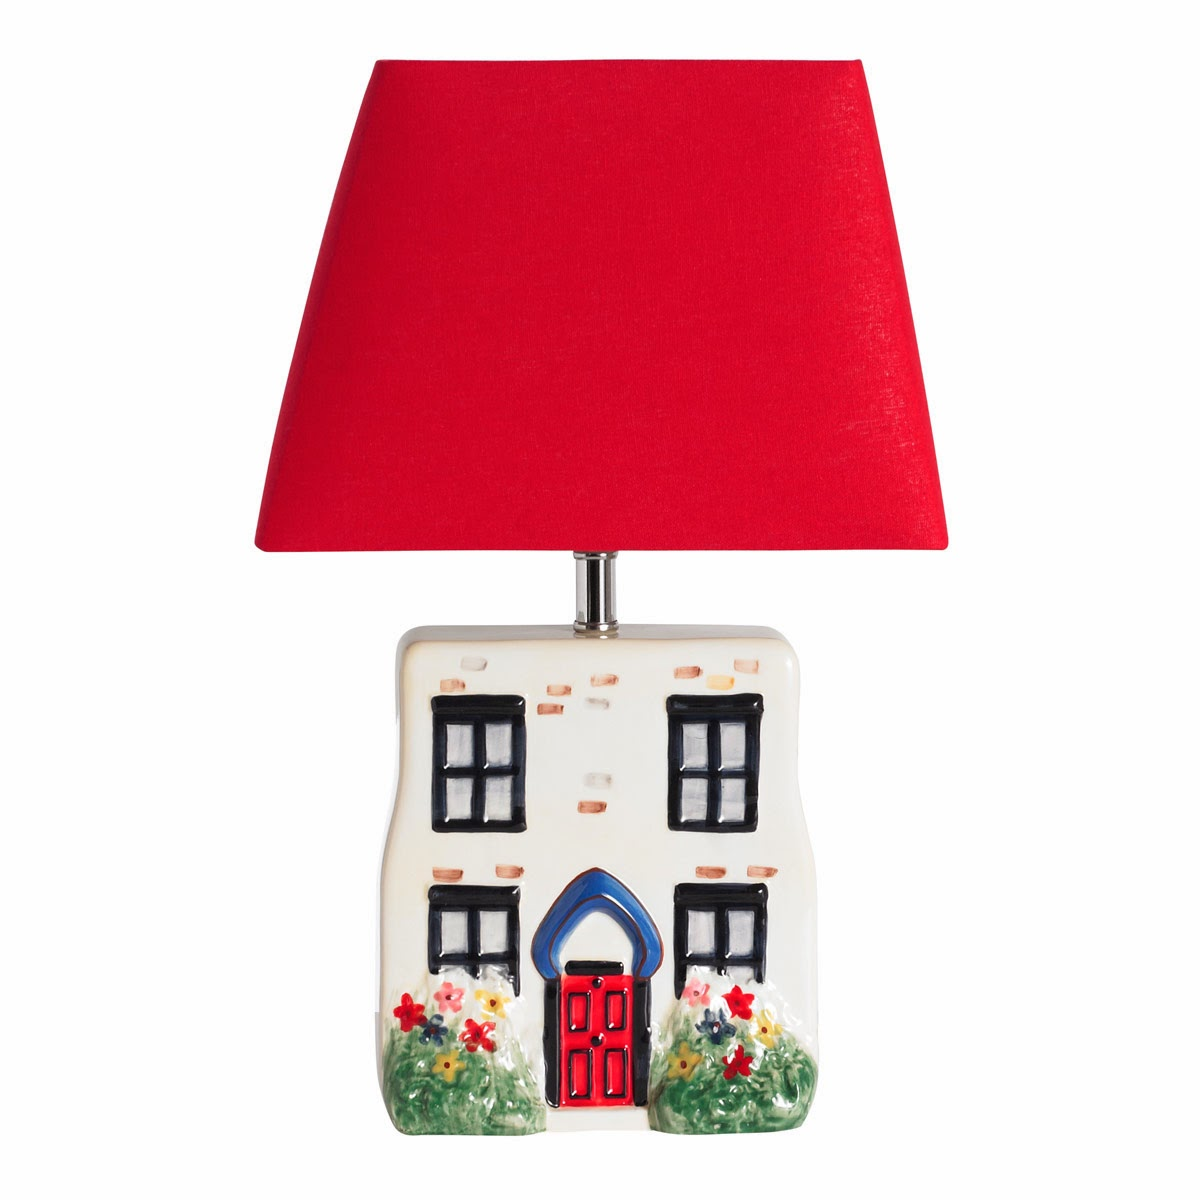 Novelty Lamp Posts : stitchcraftsew: love this: Cath Kidston novelty lamps